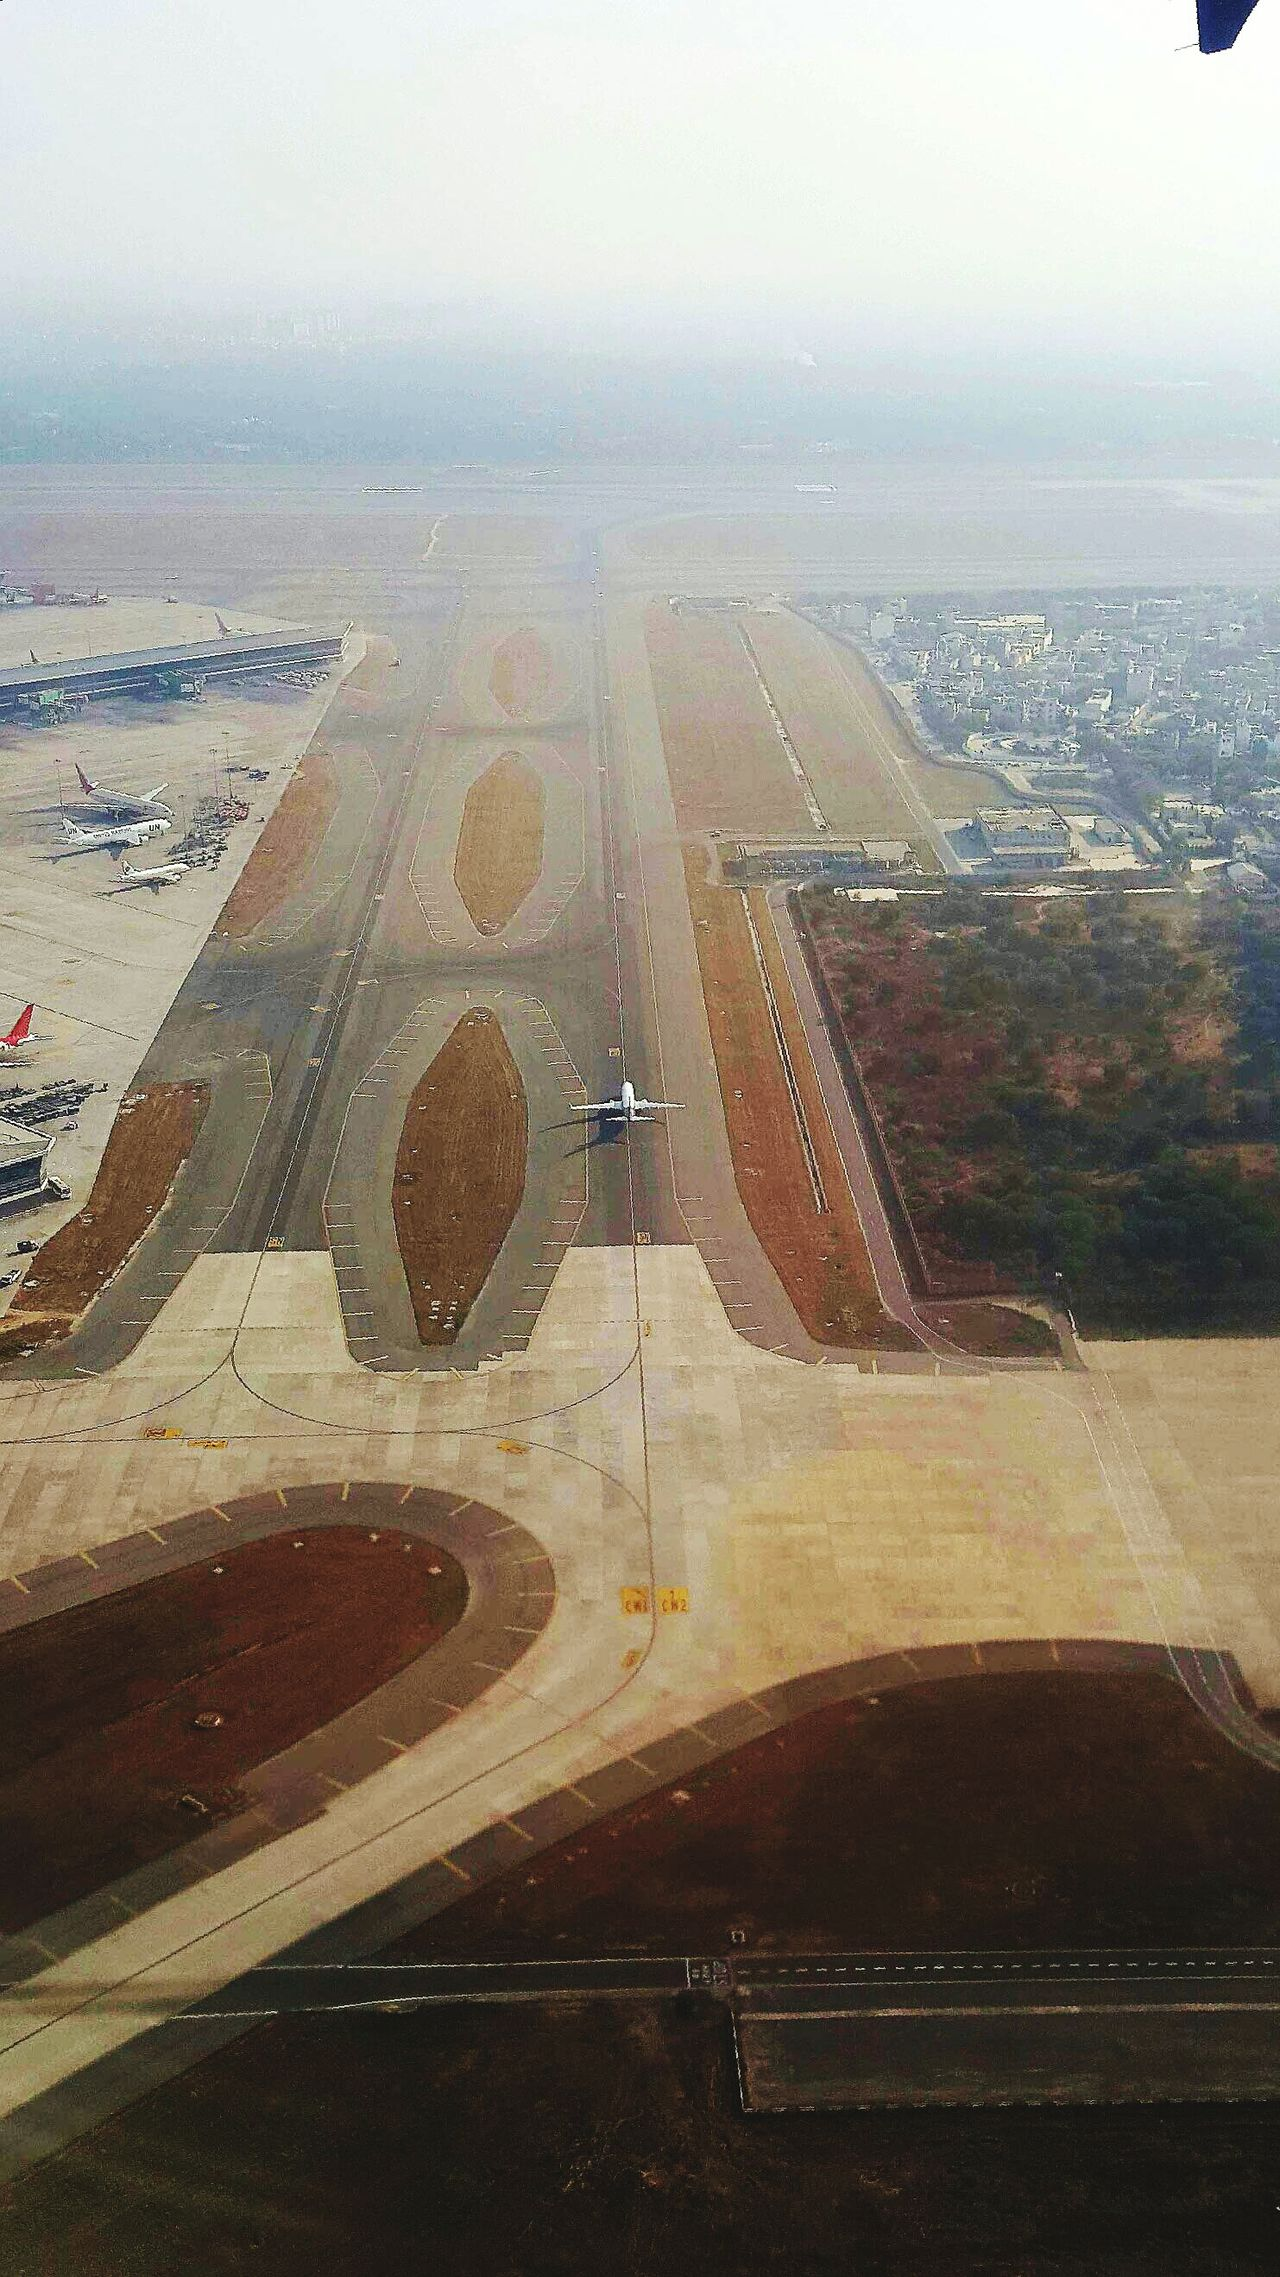 World From Above Take Off! Air Photographer Samsung Galaxy Note 5 Perfect Click Relaxing Delhi Airport PhotoManiac Passion Photographer Greenery_scenery Aeroplane Window Aeroplaneviews Aerial View Aeroplane Photography Filtered Taking Photos Delhi Airport Mjz Photography